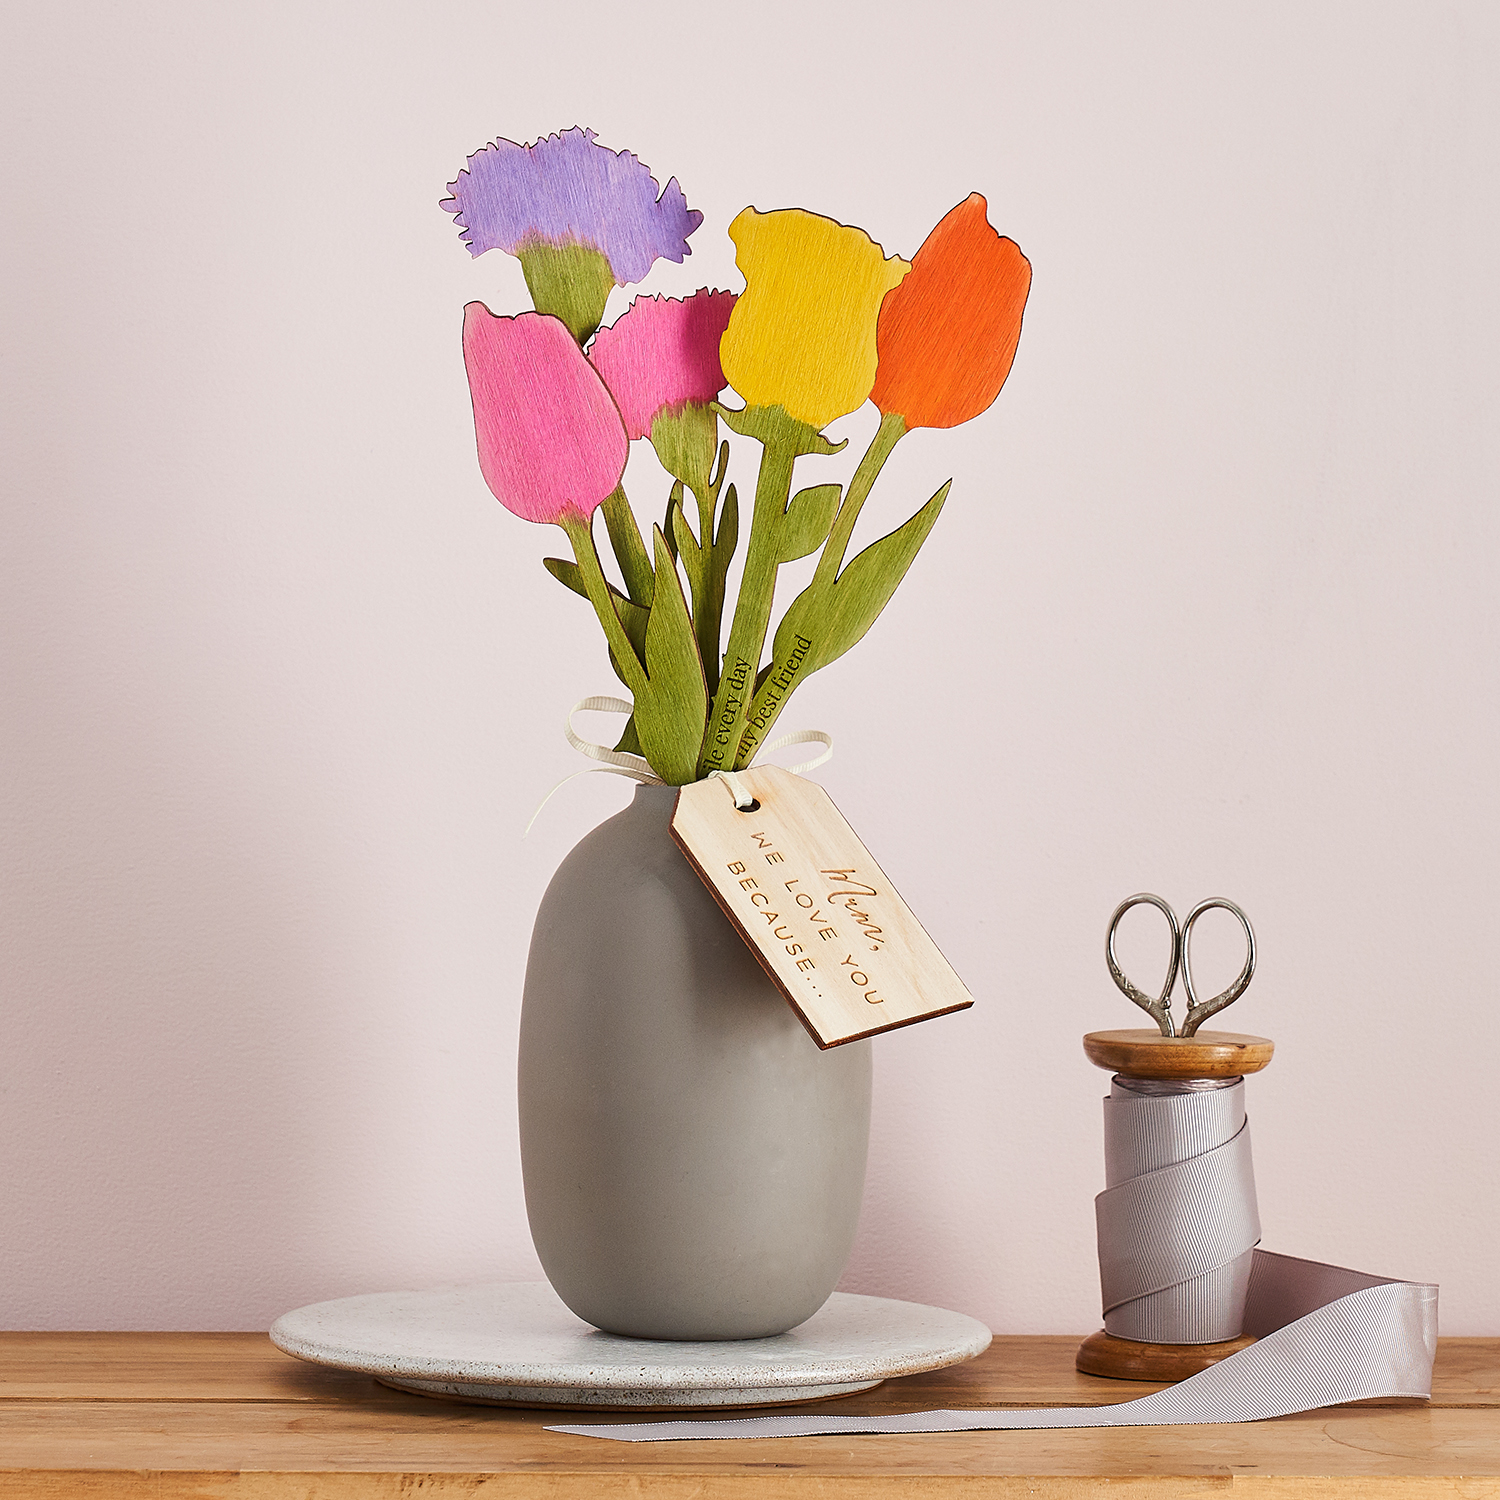 Colourful wooden flowers in a grey vase